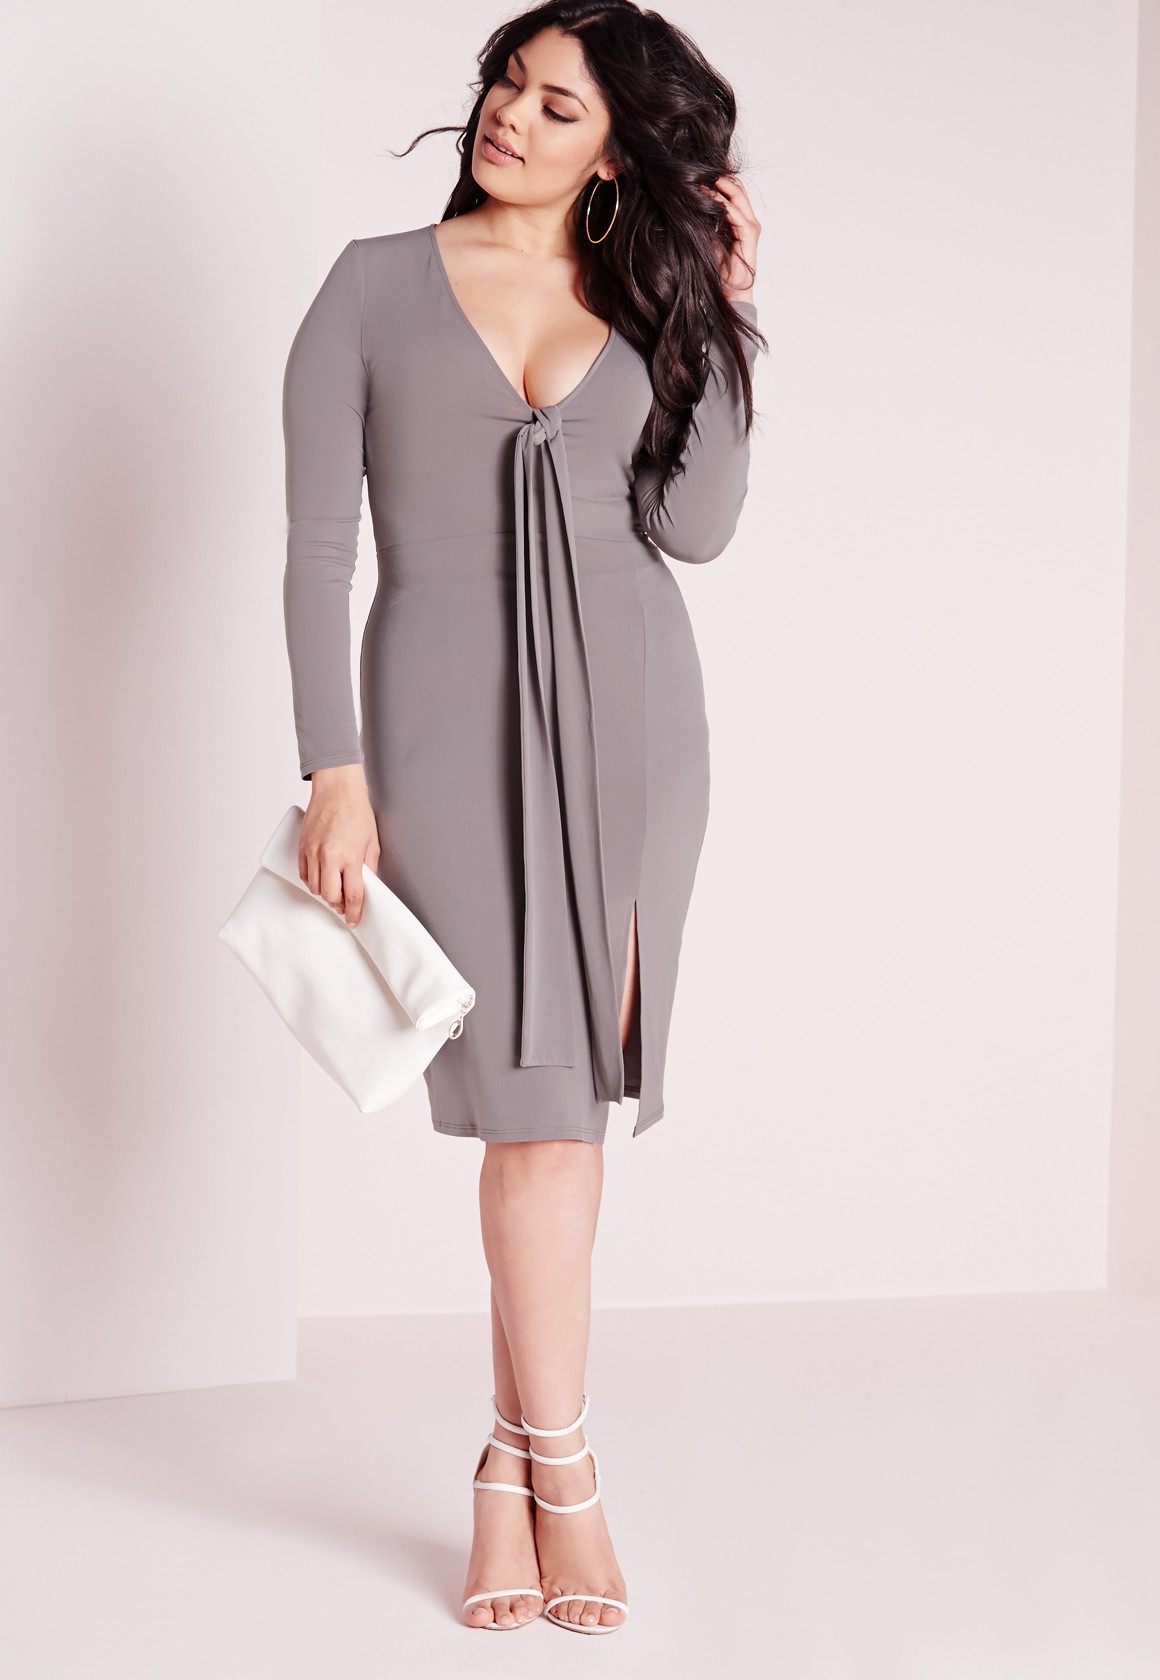 7 Plus Size Dresses for Women Who Are about to Attend a Summer Wedding